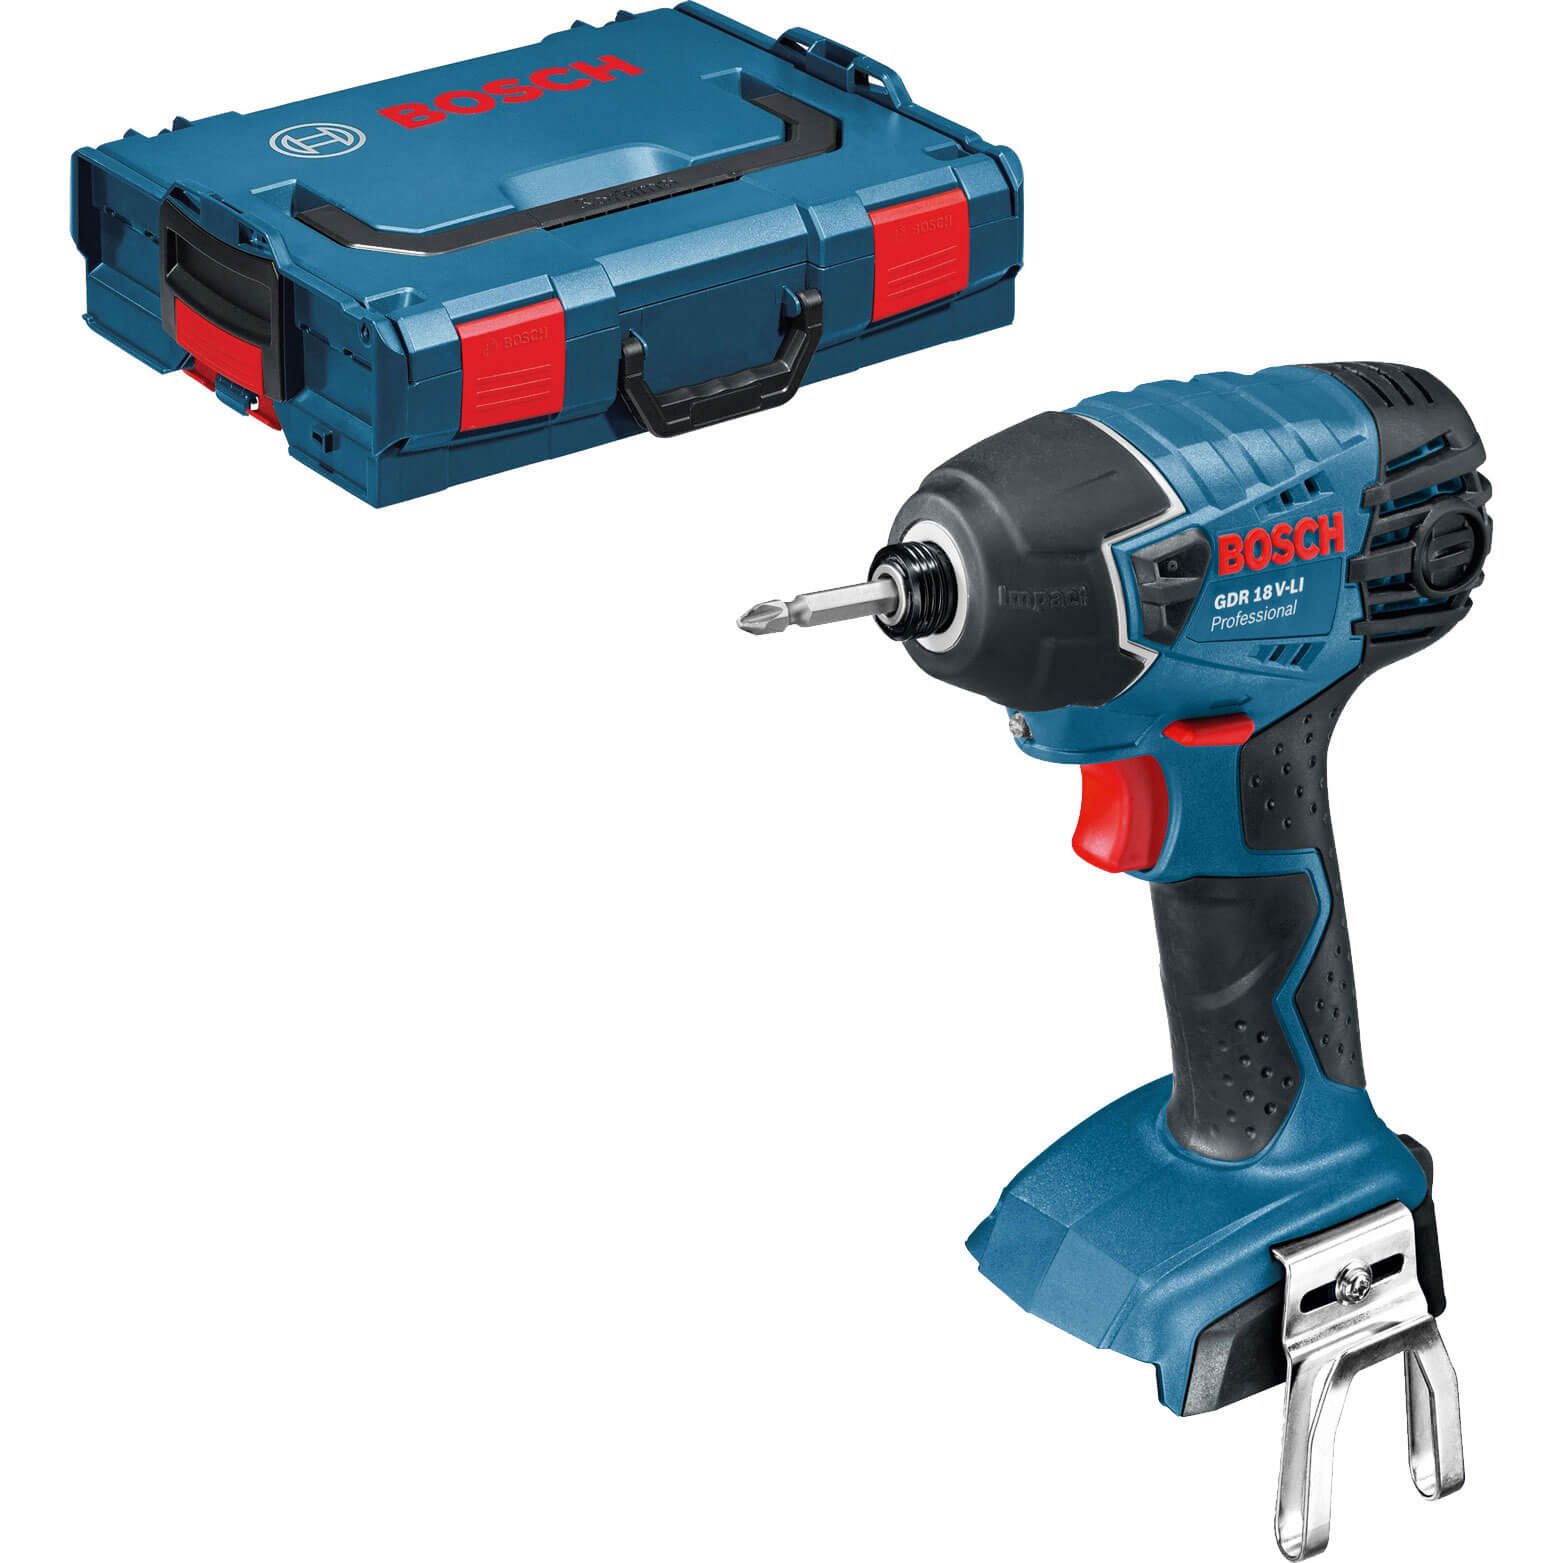 bosch gdr 18 v li 18v cordless impact driver no batteries no charger case. Black Bedroom Furniture Sets. Home Design Ideas